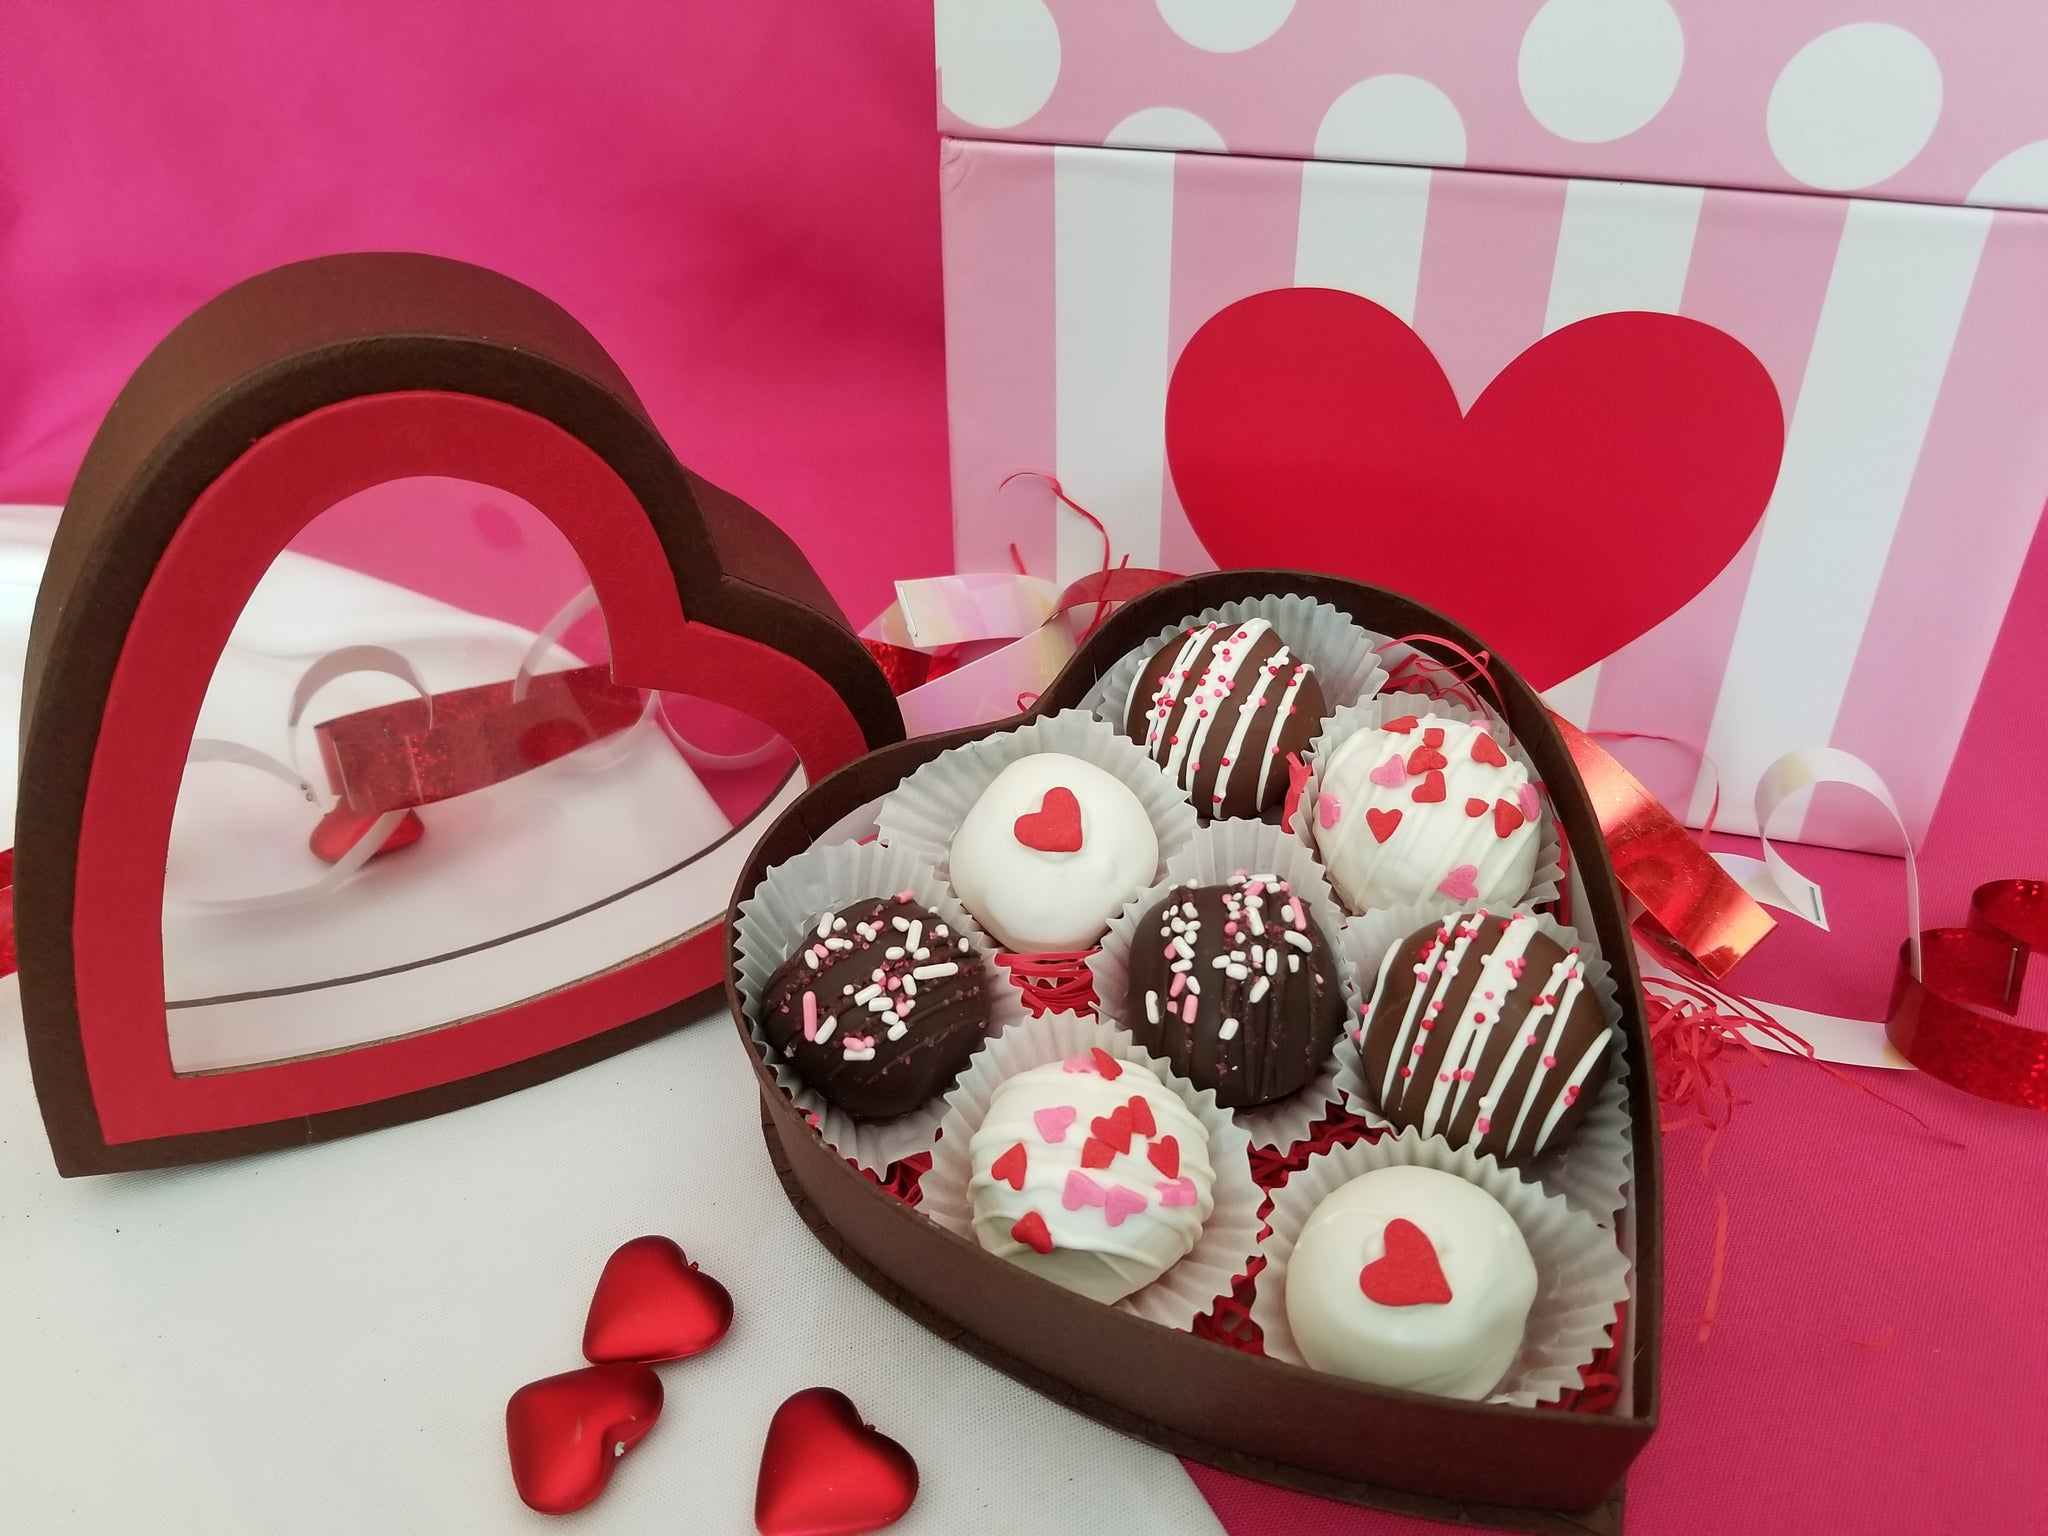 8 pc Sweetheart Gift Box (Sold in sets of 3) BEST VALUE